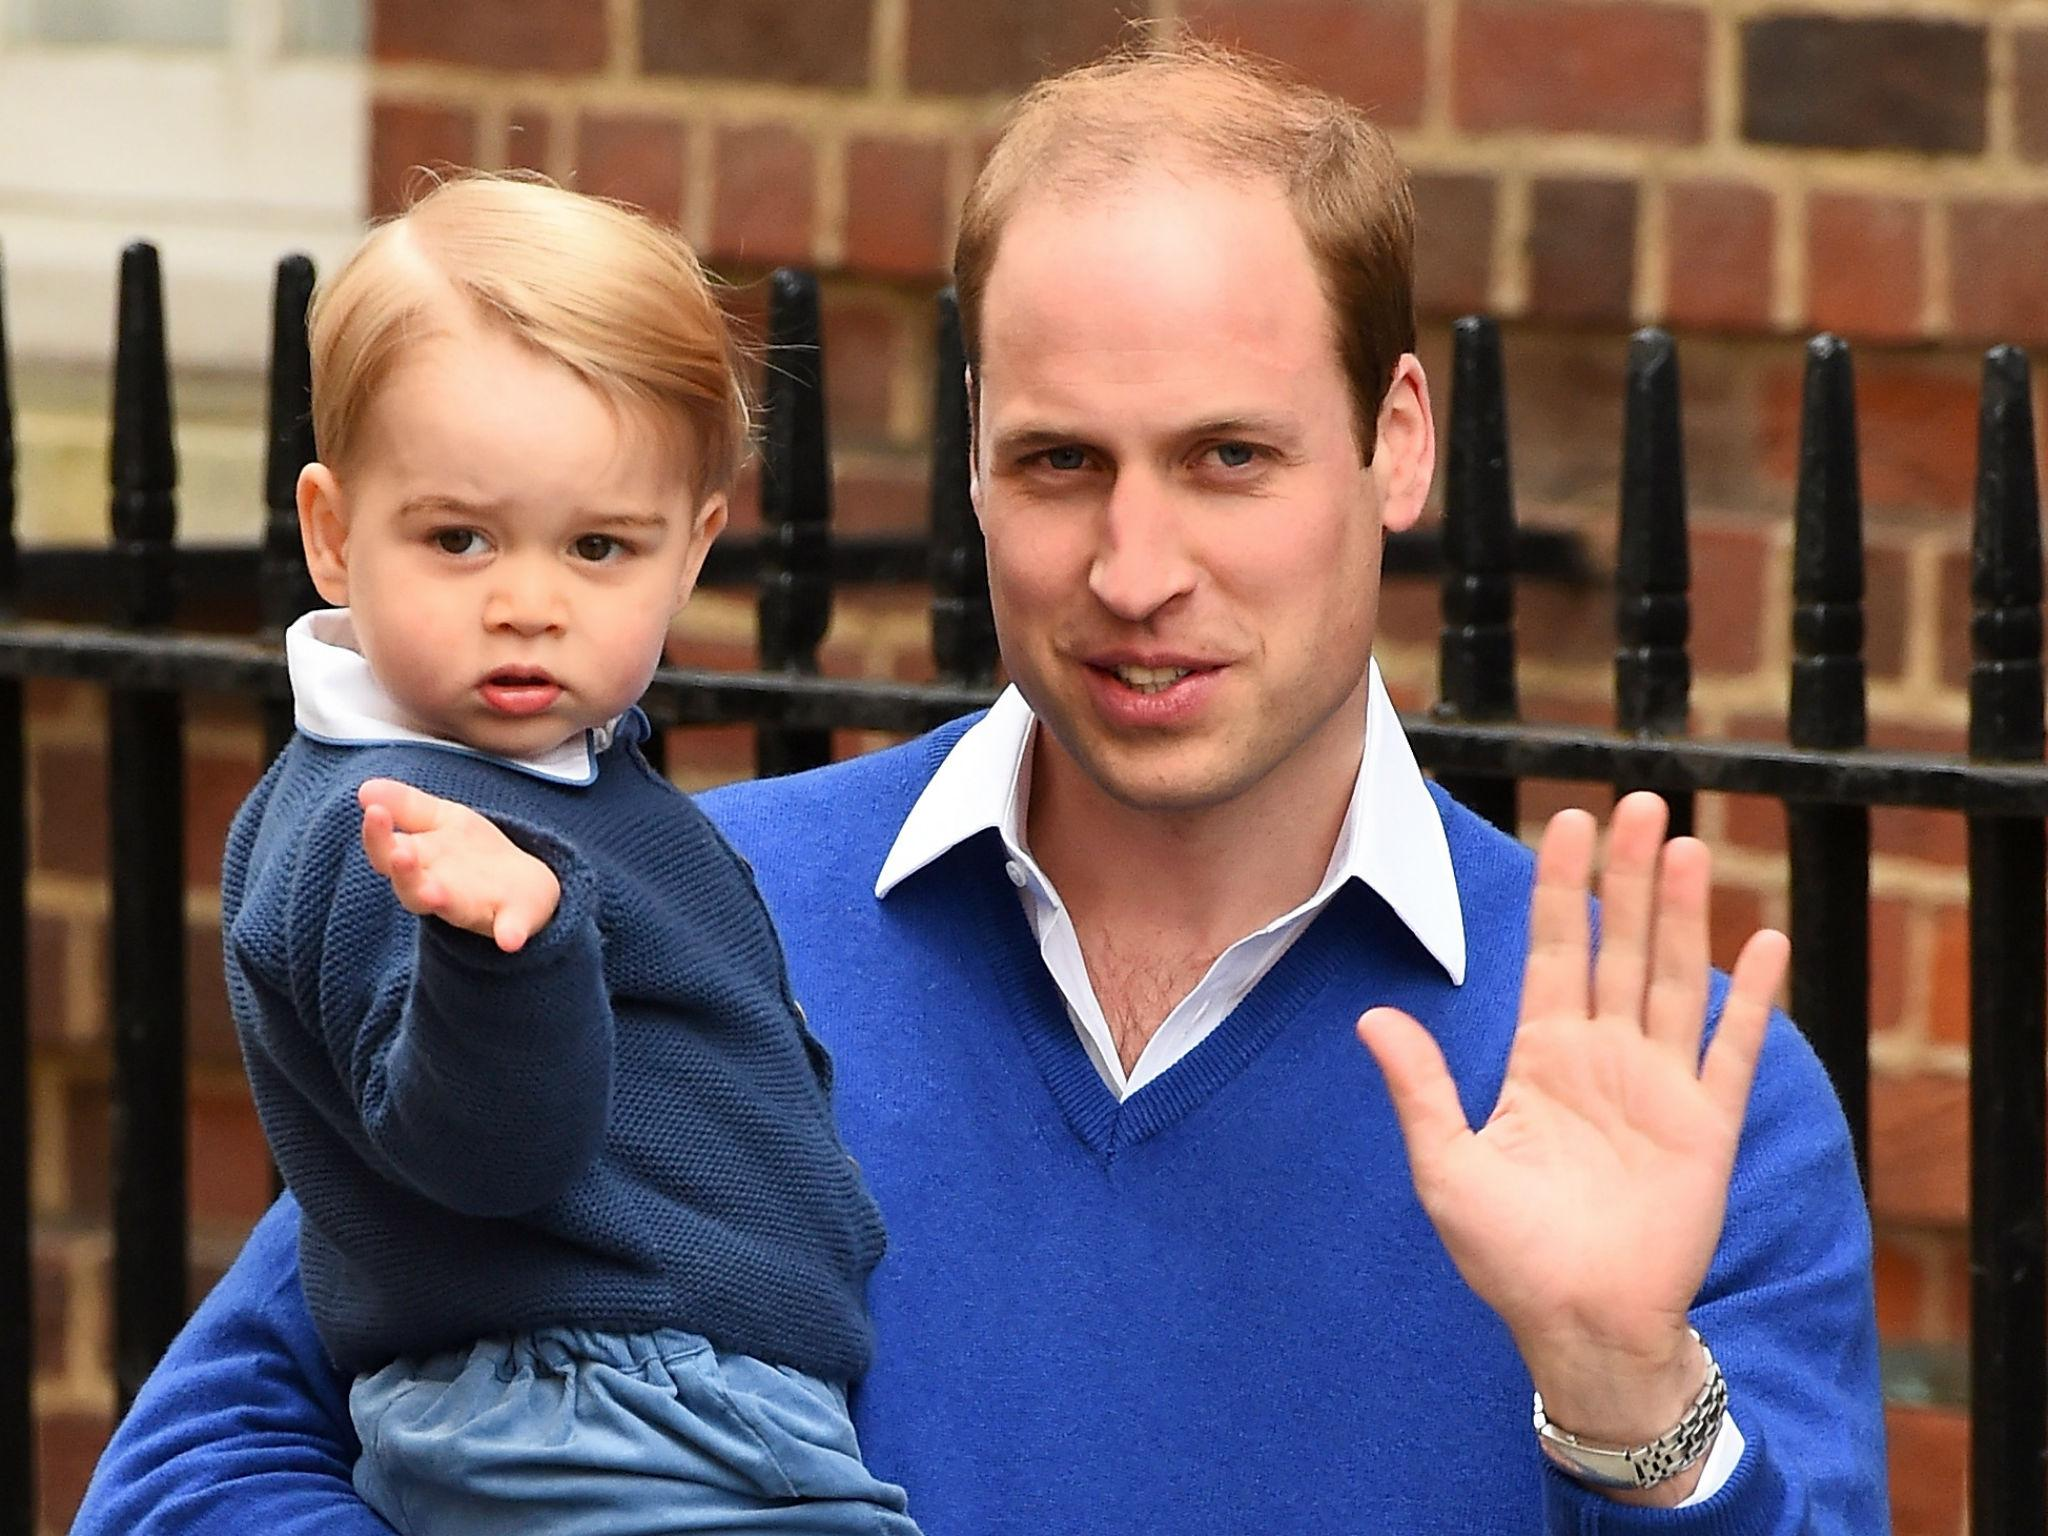 Sex dating Prince George